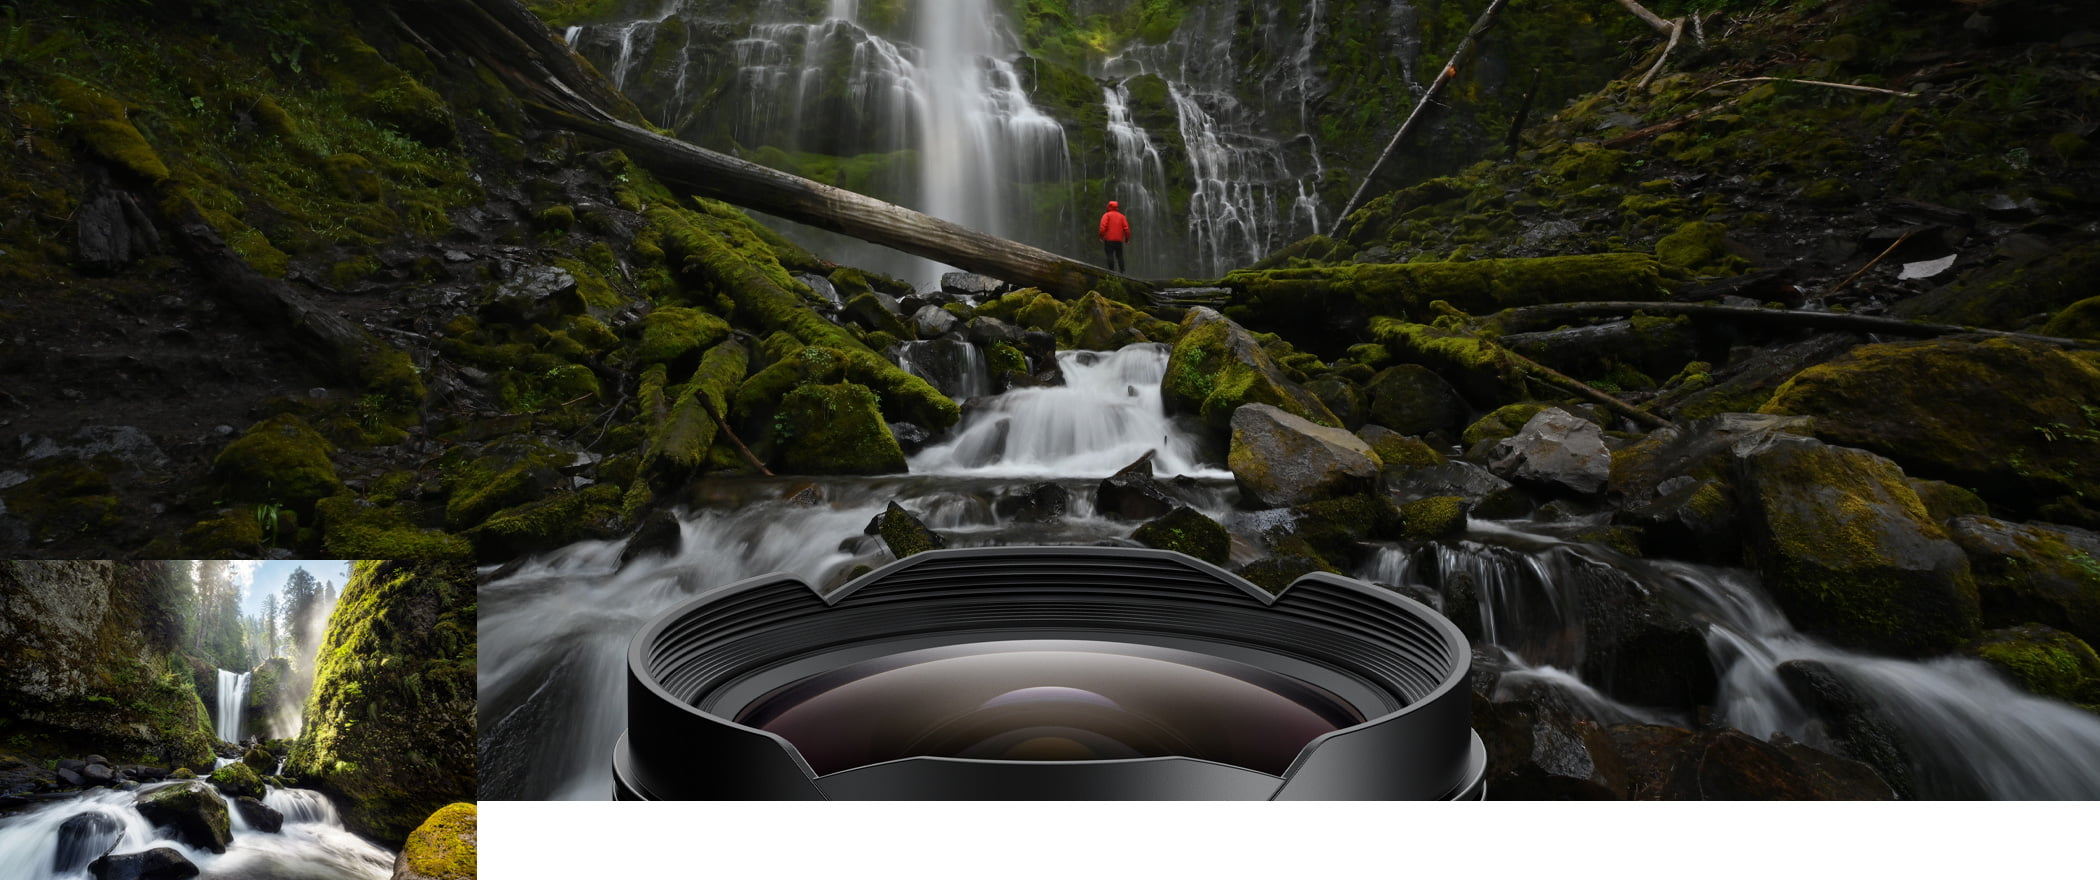 Photo of a person in a forest, inset with another image of a waterfall, both taken with the NIKKOR Z 14-24mm f/2.8 S lens.